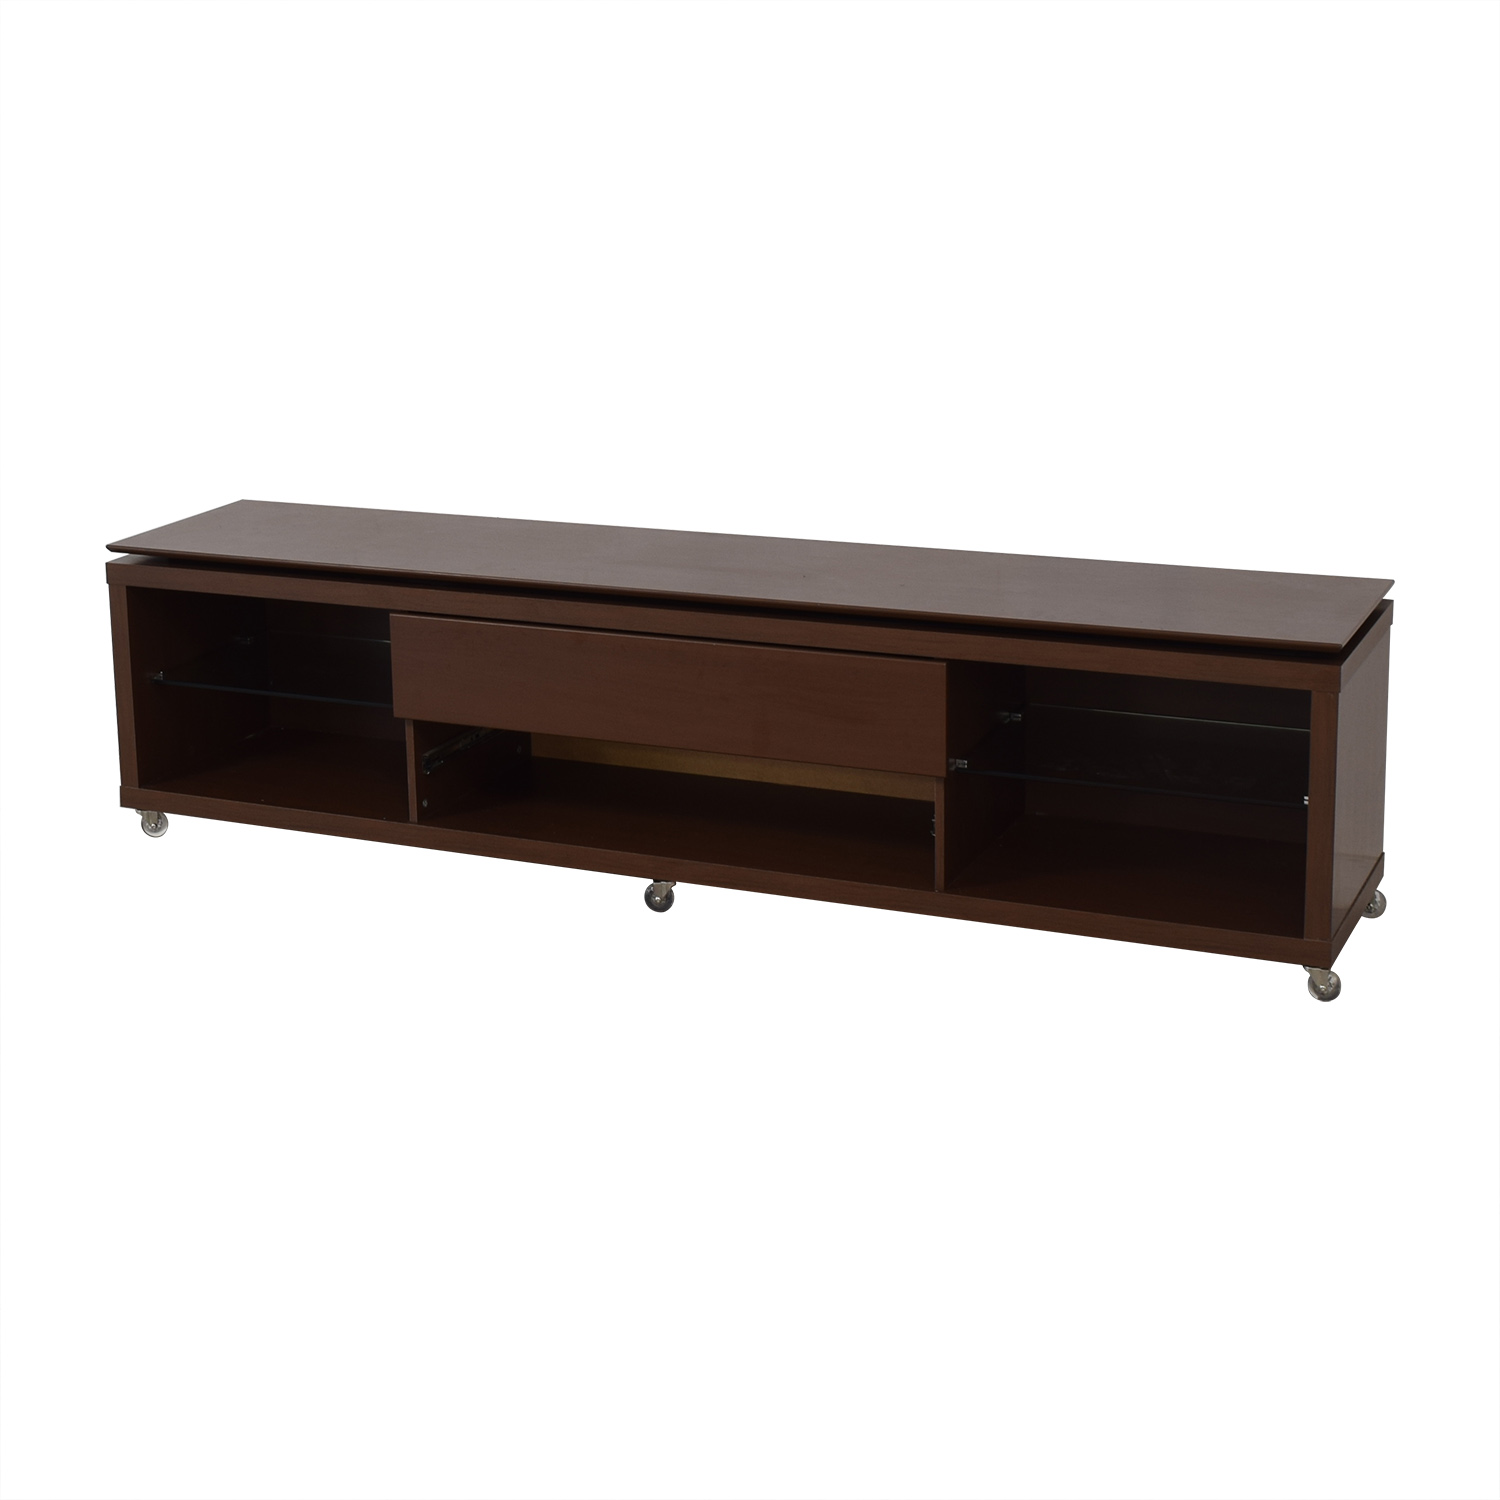 Bed Bath & Beyond Bed Bath & Beyond Manhattan Comfort Lincoln Media Stand second hand